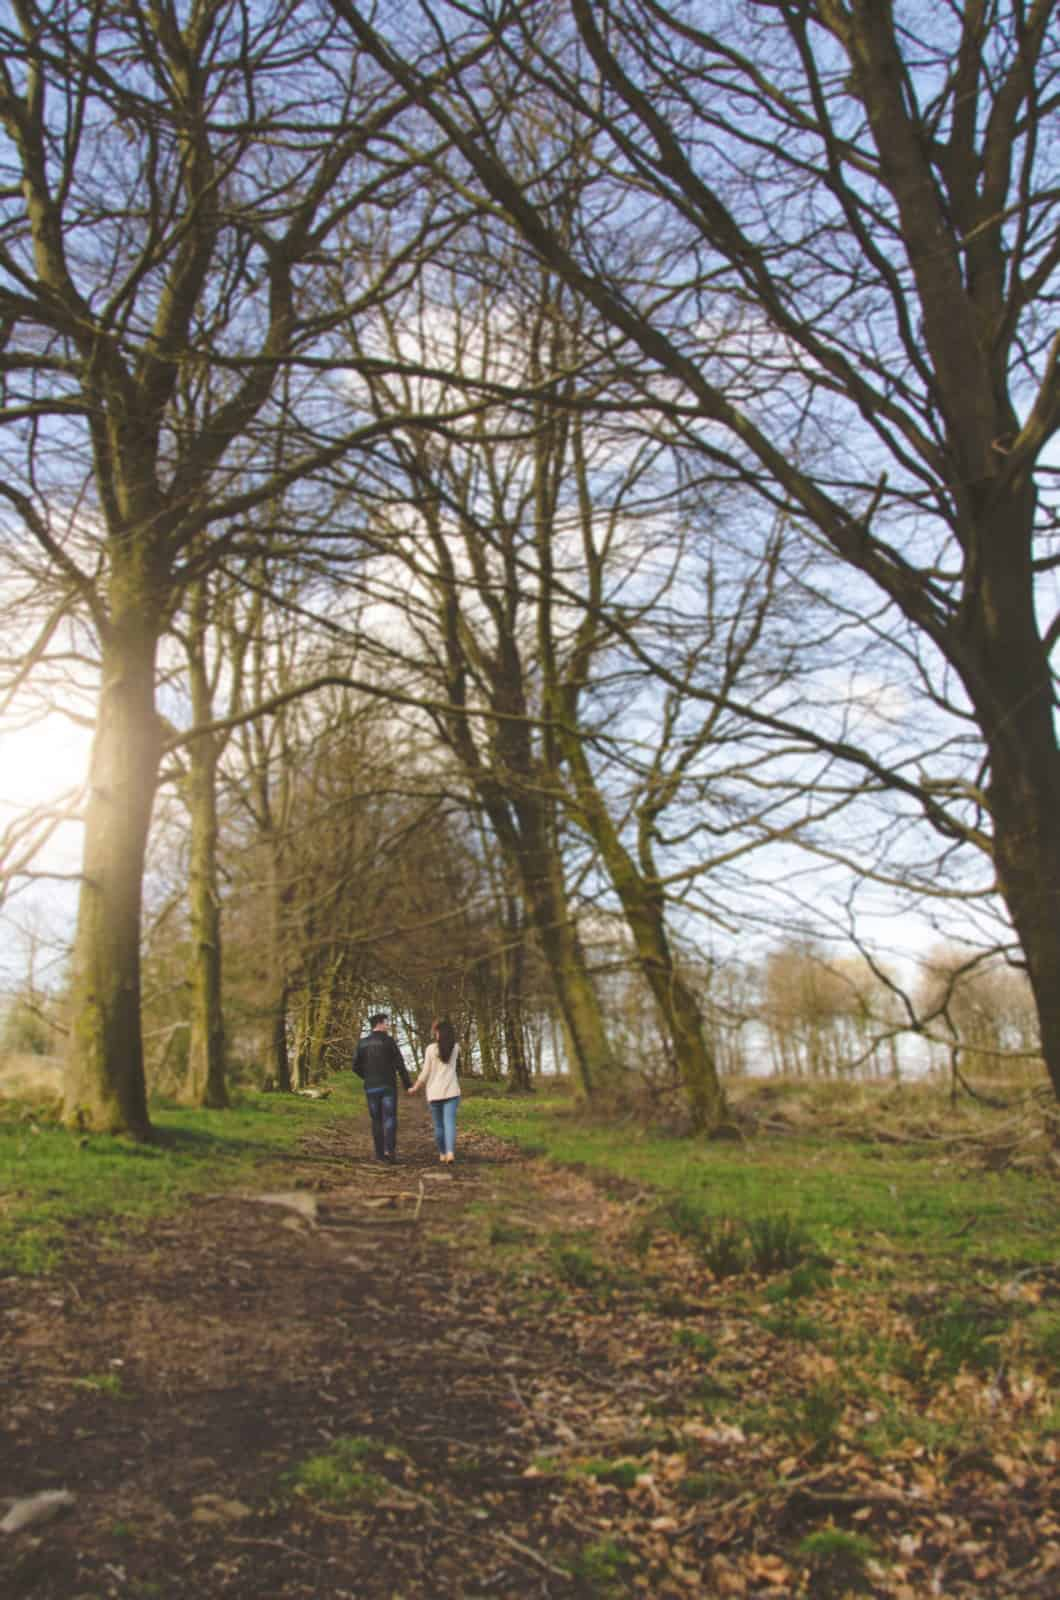 Couple walk hand in hand down tree lined path